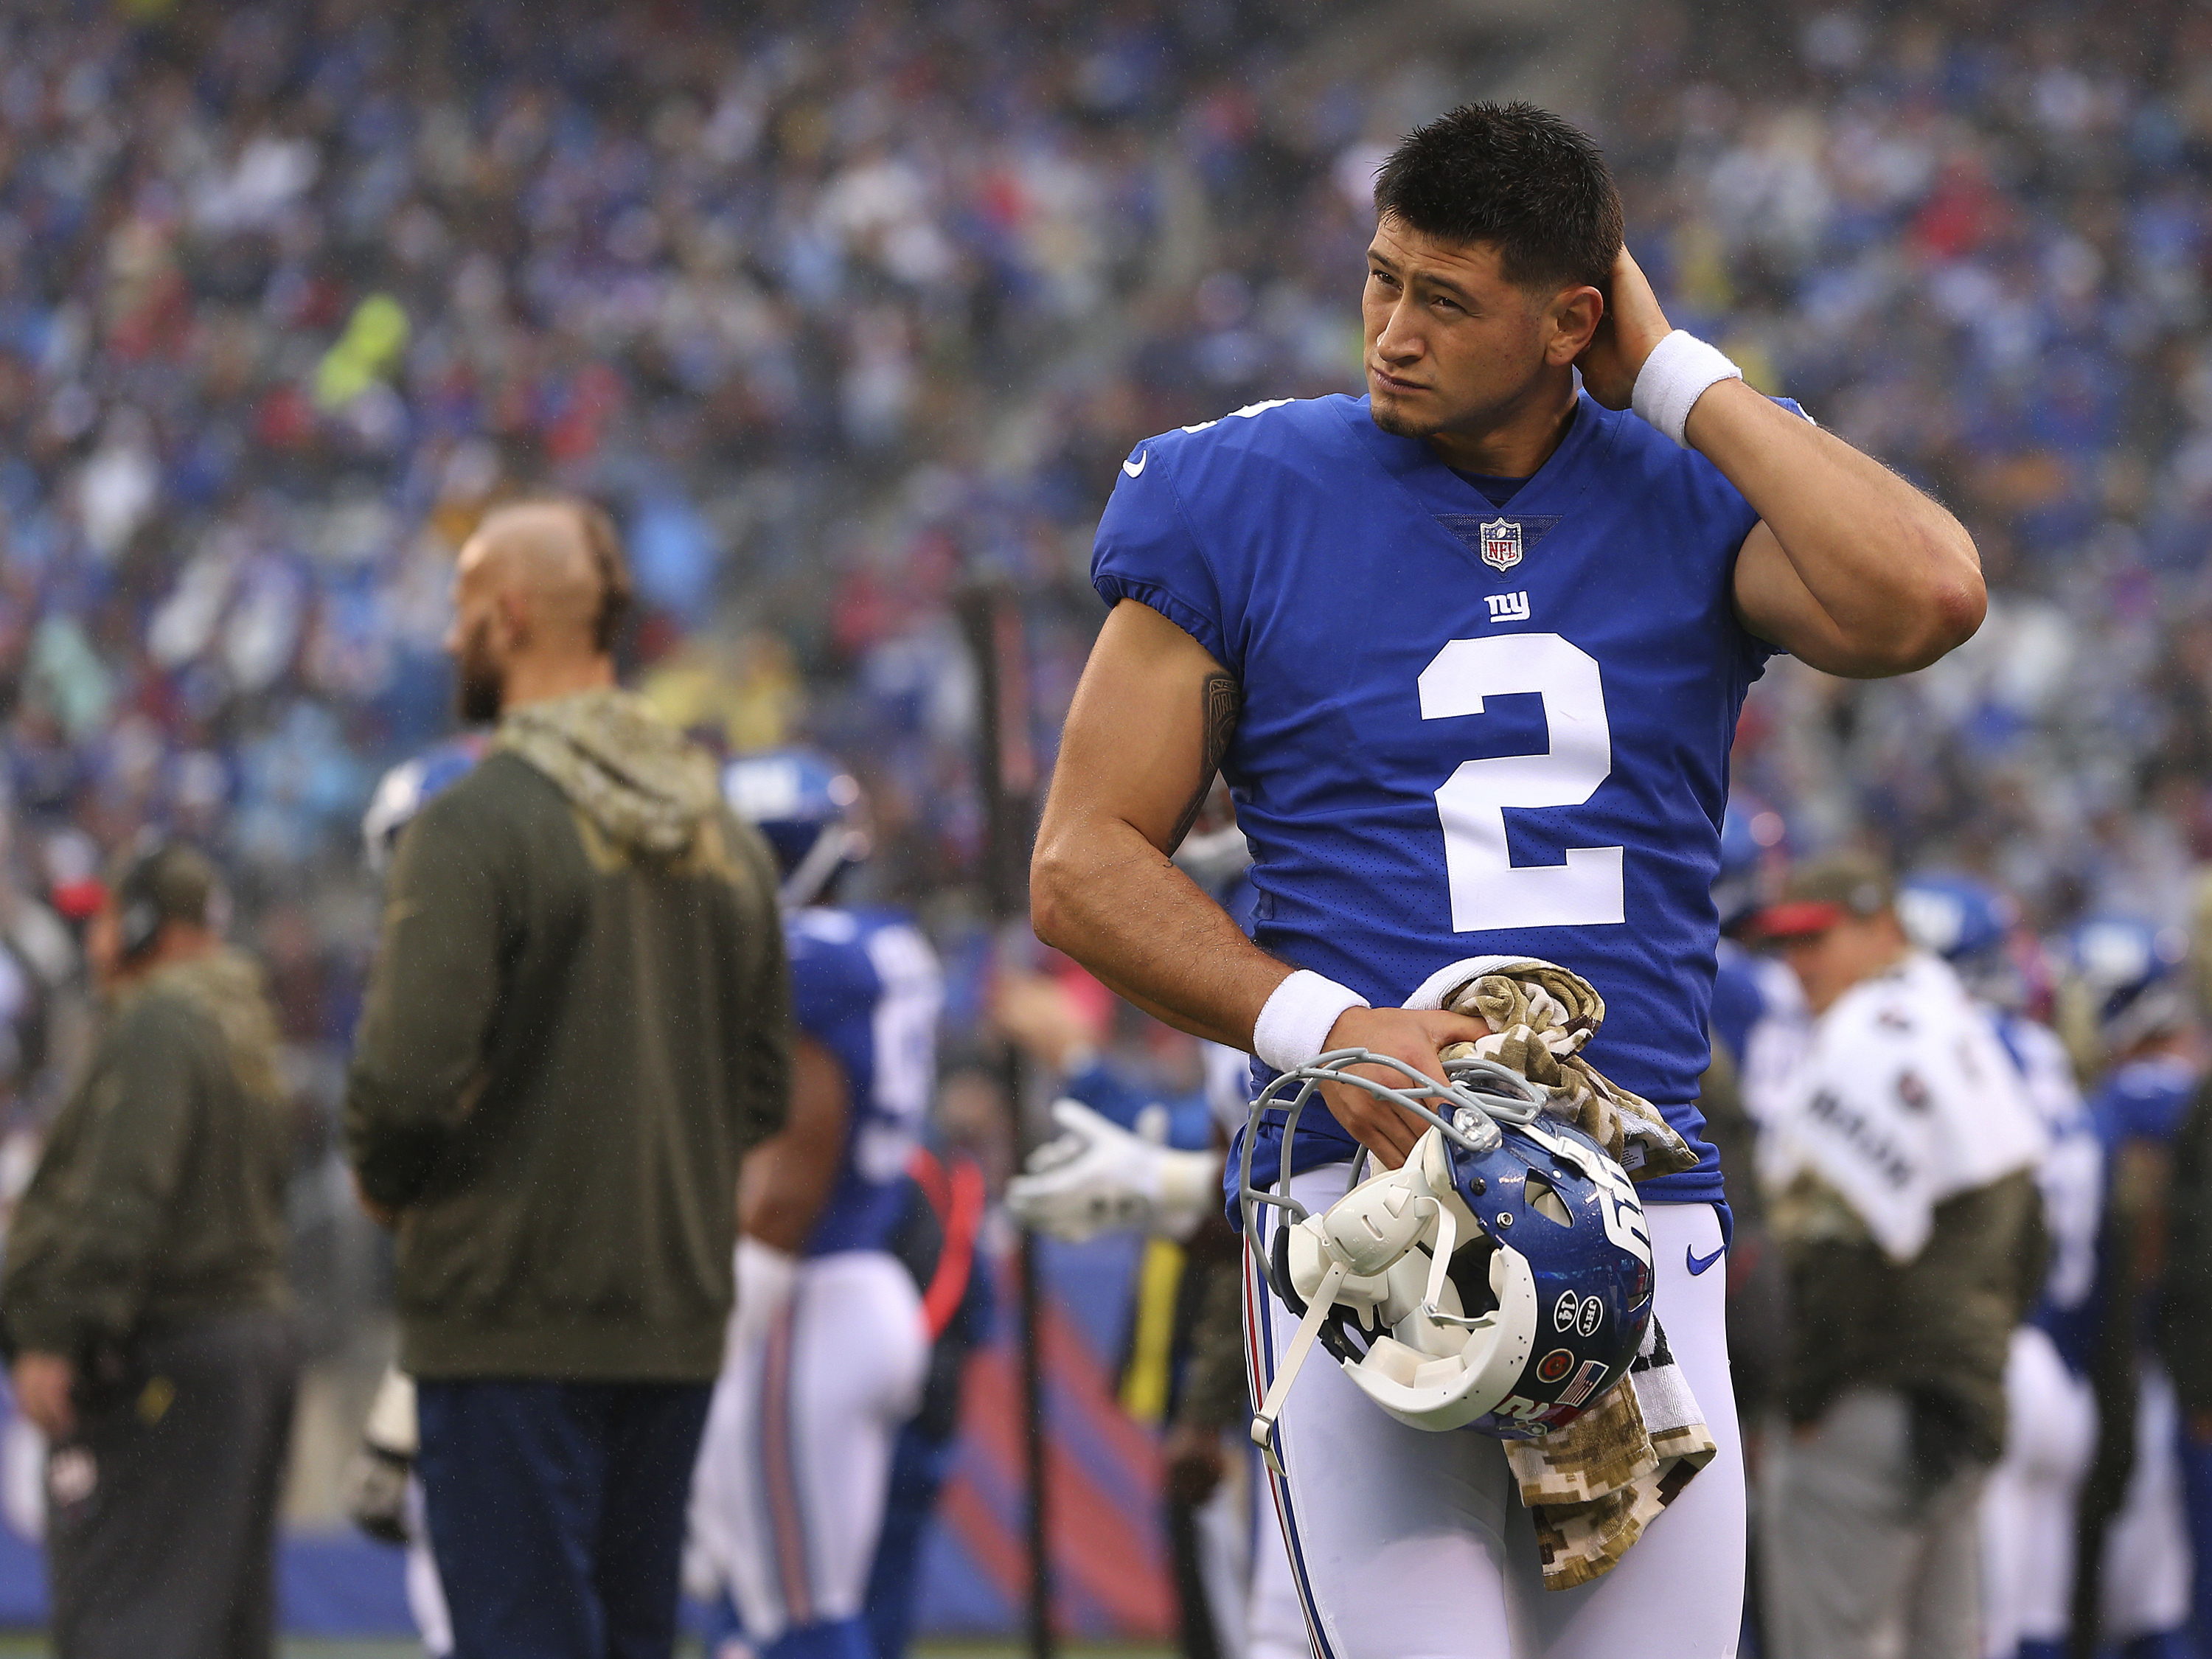 Report: Giants releasing kicker Aldrick Rosas following hit-and-run charges